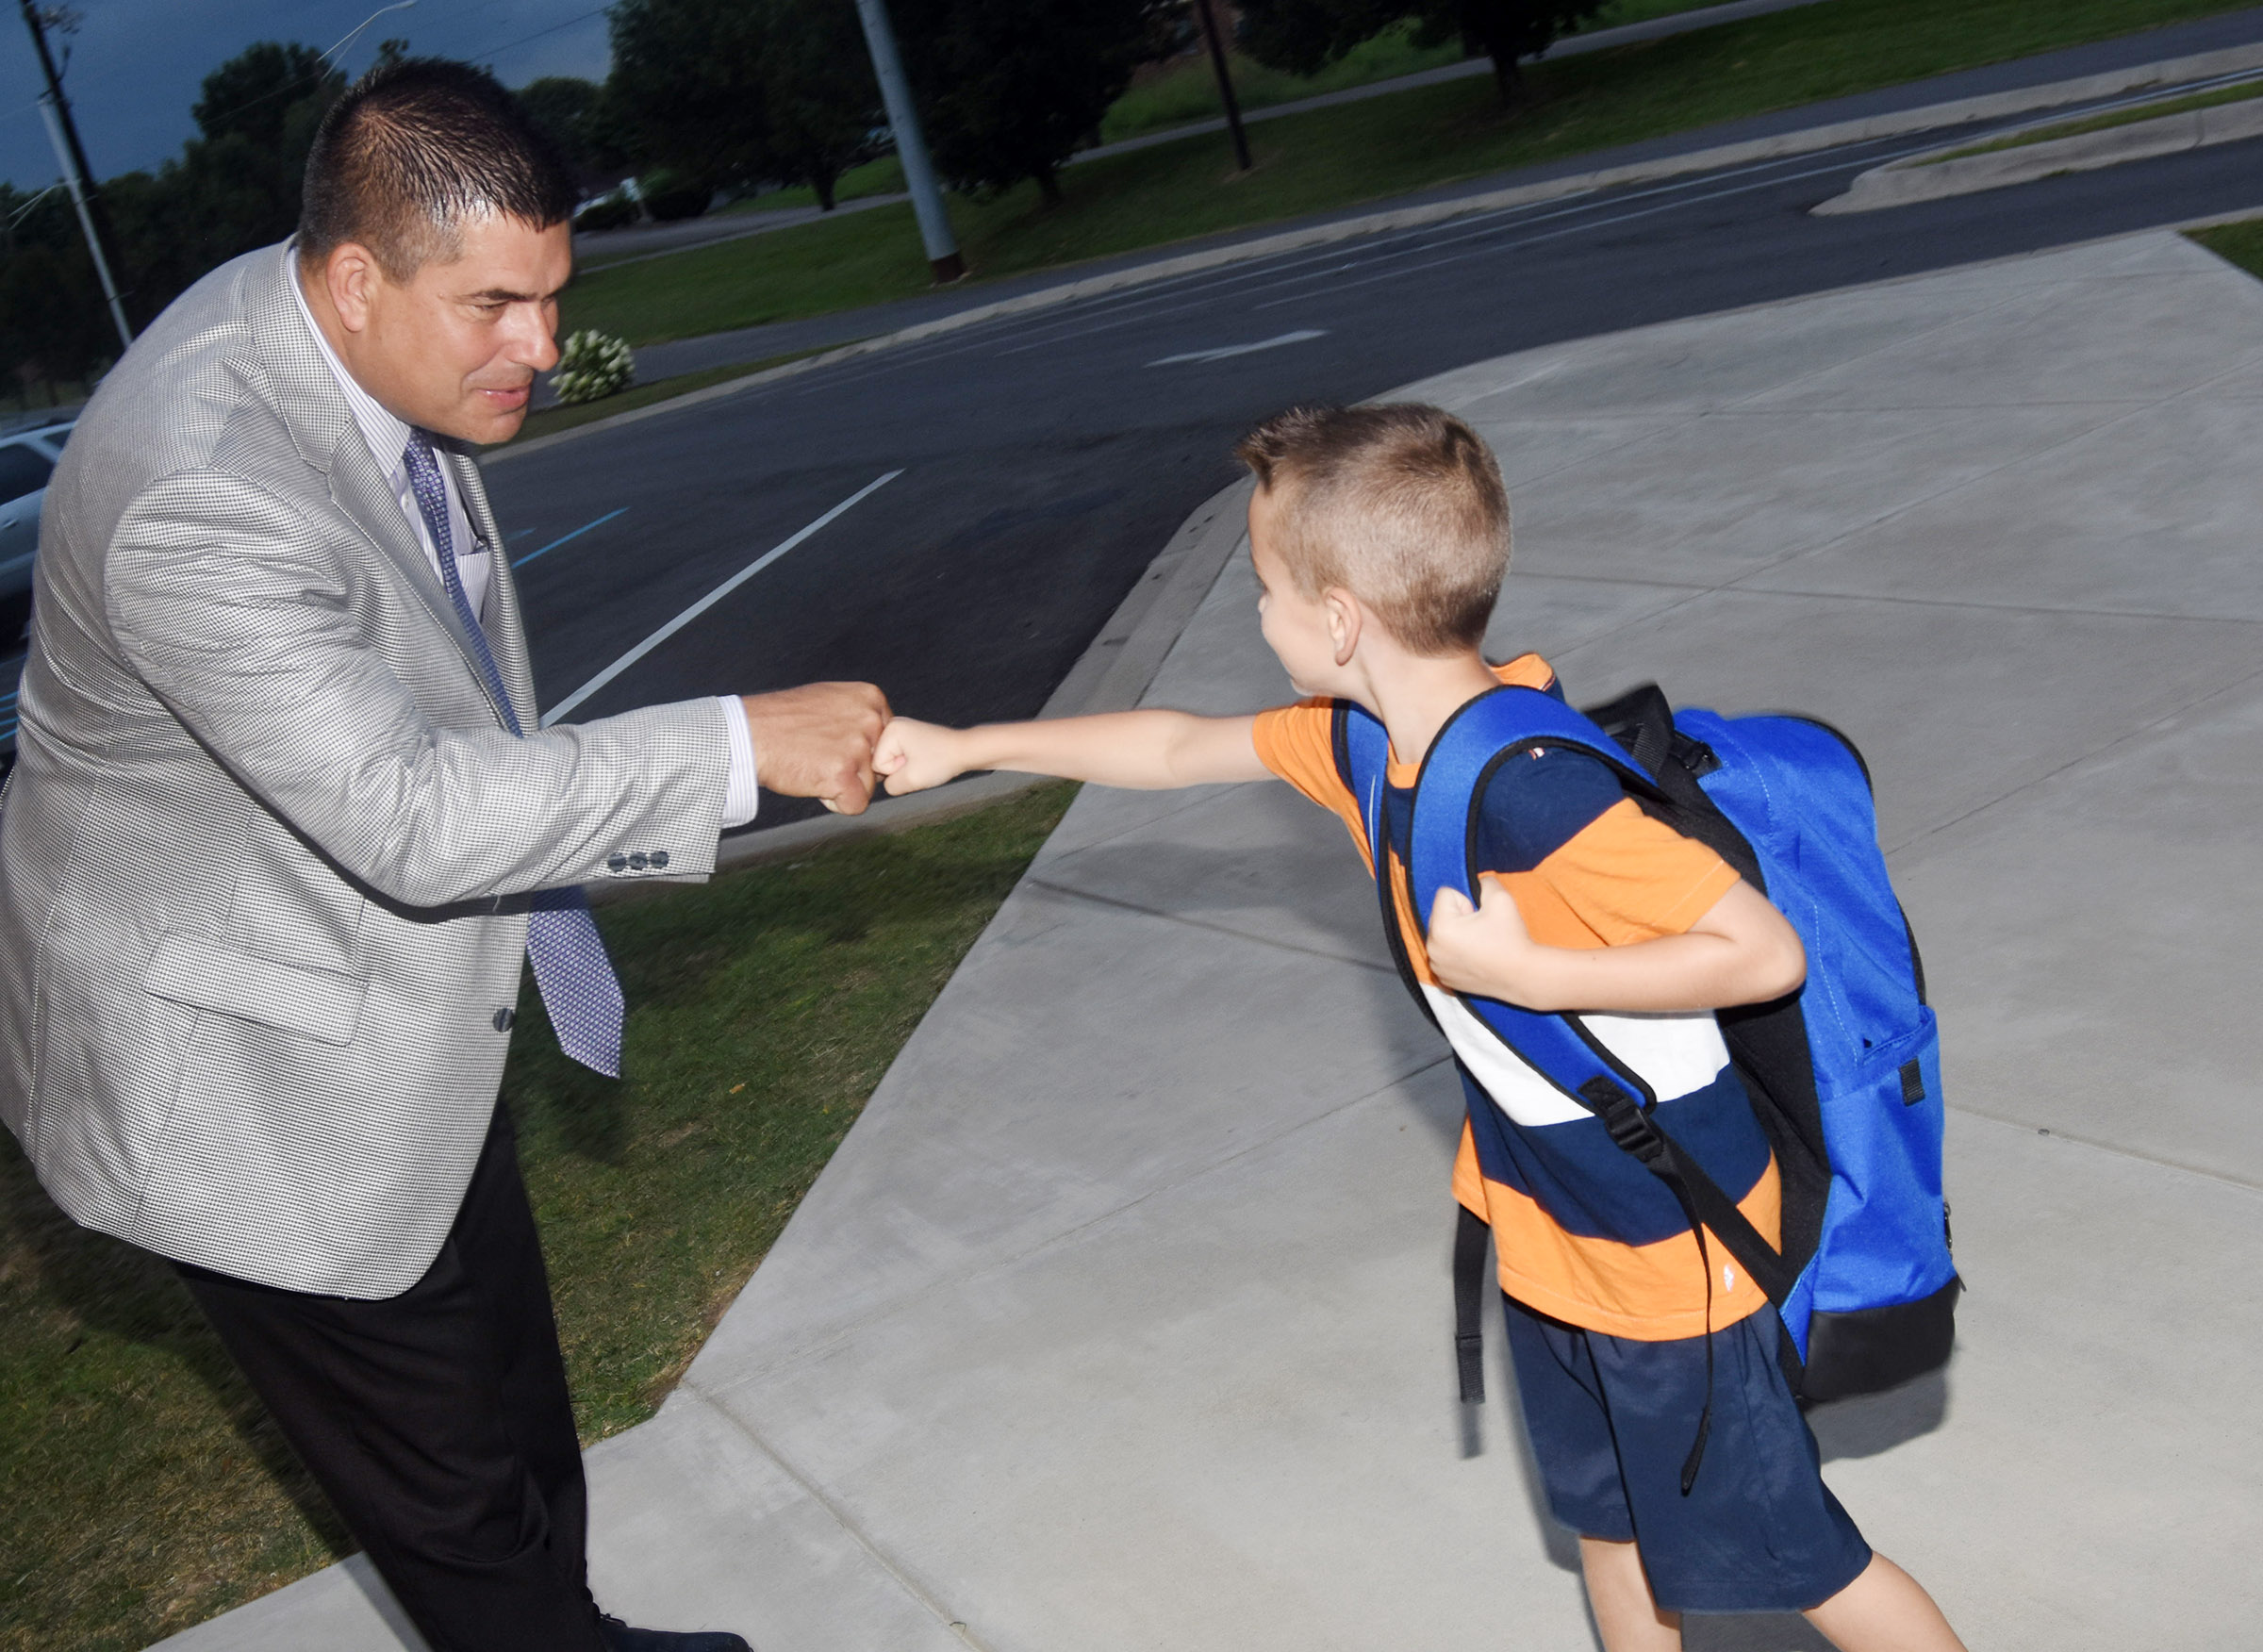 Campbellsville Independent Schools Superintendent Kirby Smith fist bumps first-grader Cash Davis as he walks in for the first day of school at Campbellsville Elementary School.